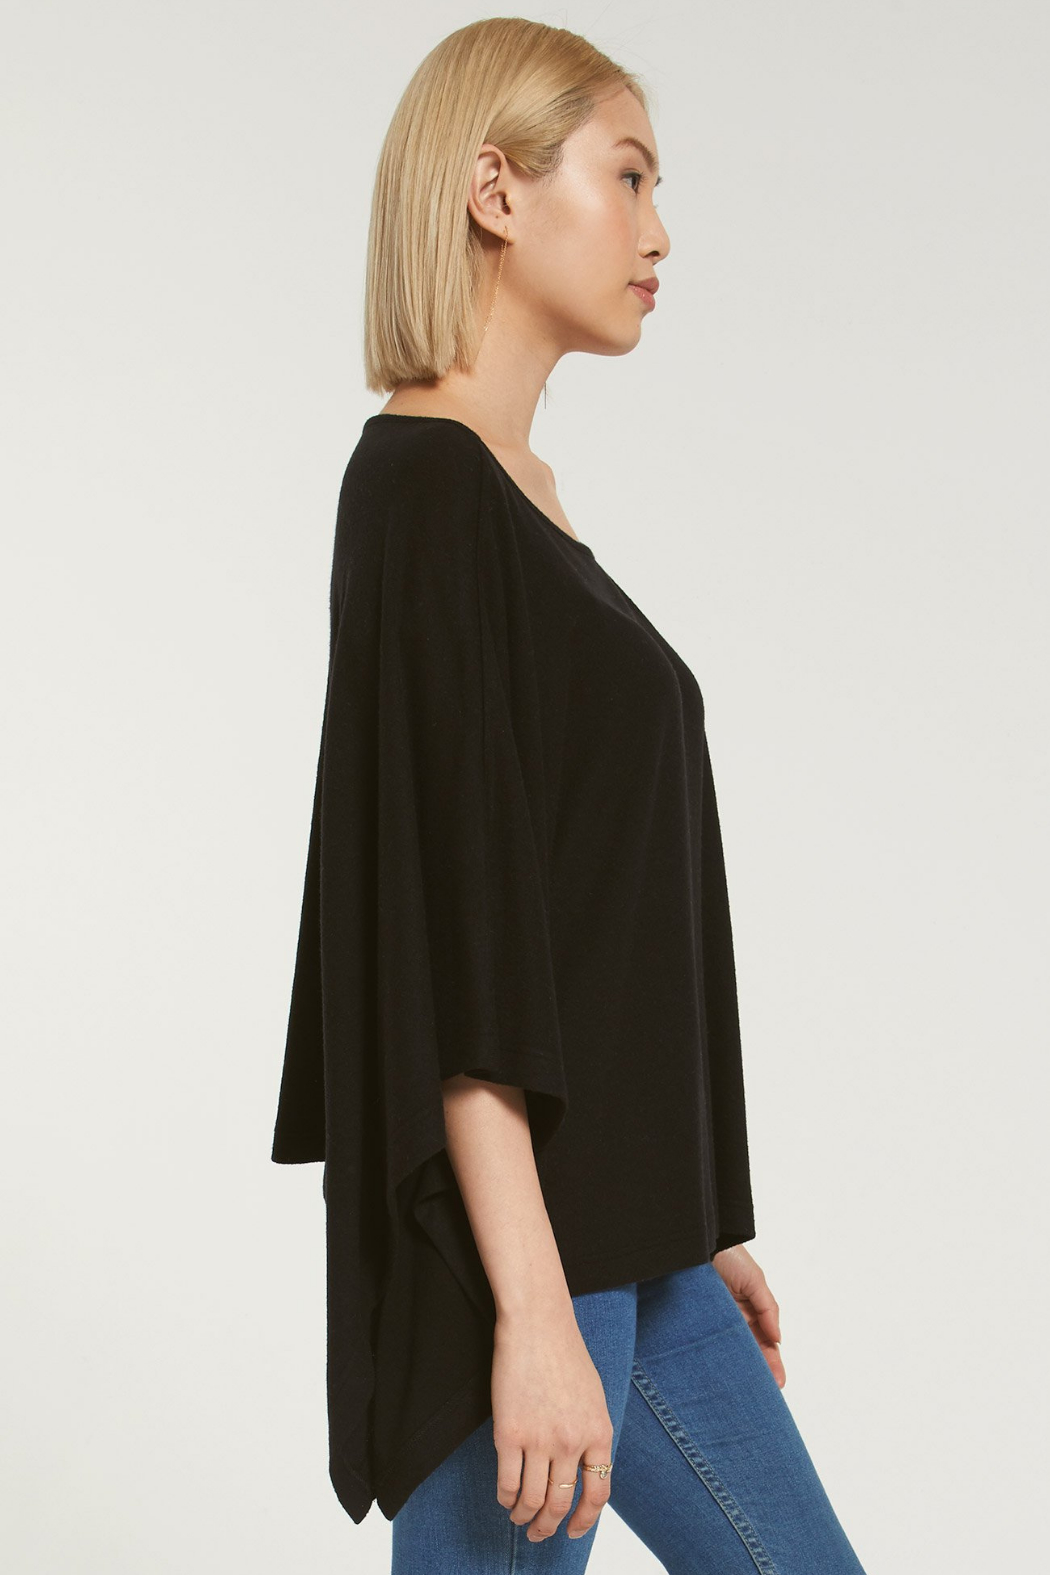 z supply Ruby Marled Poncho - Side Cropped Image